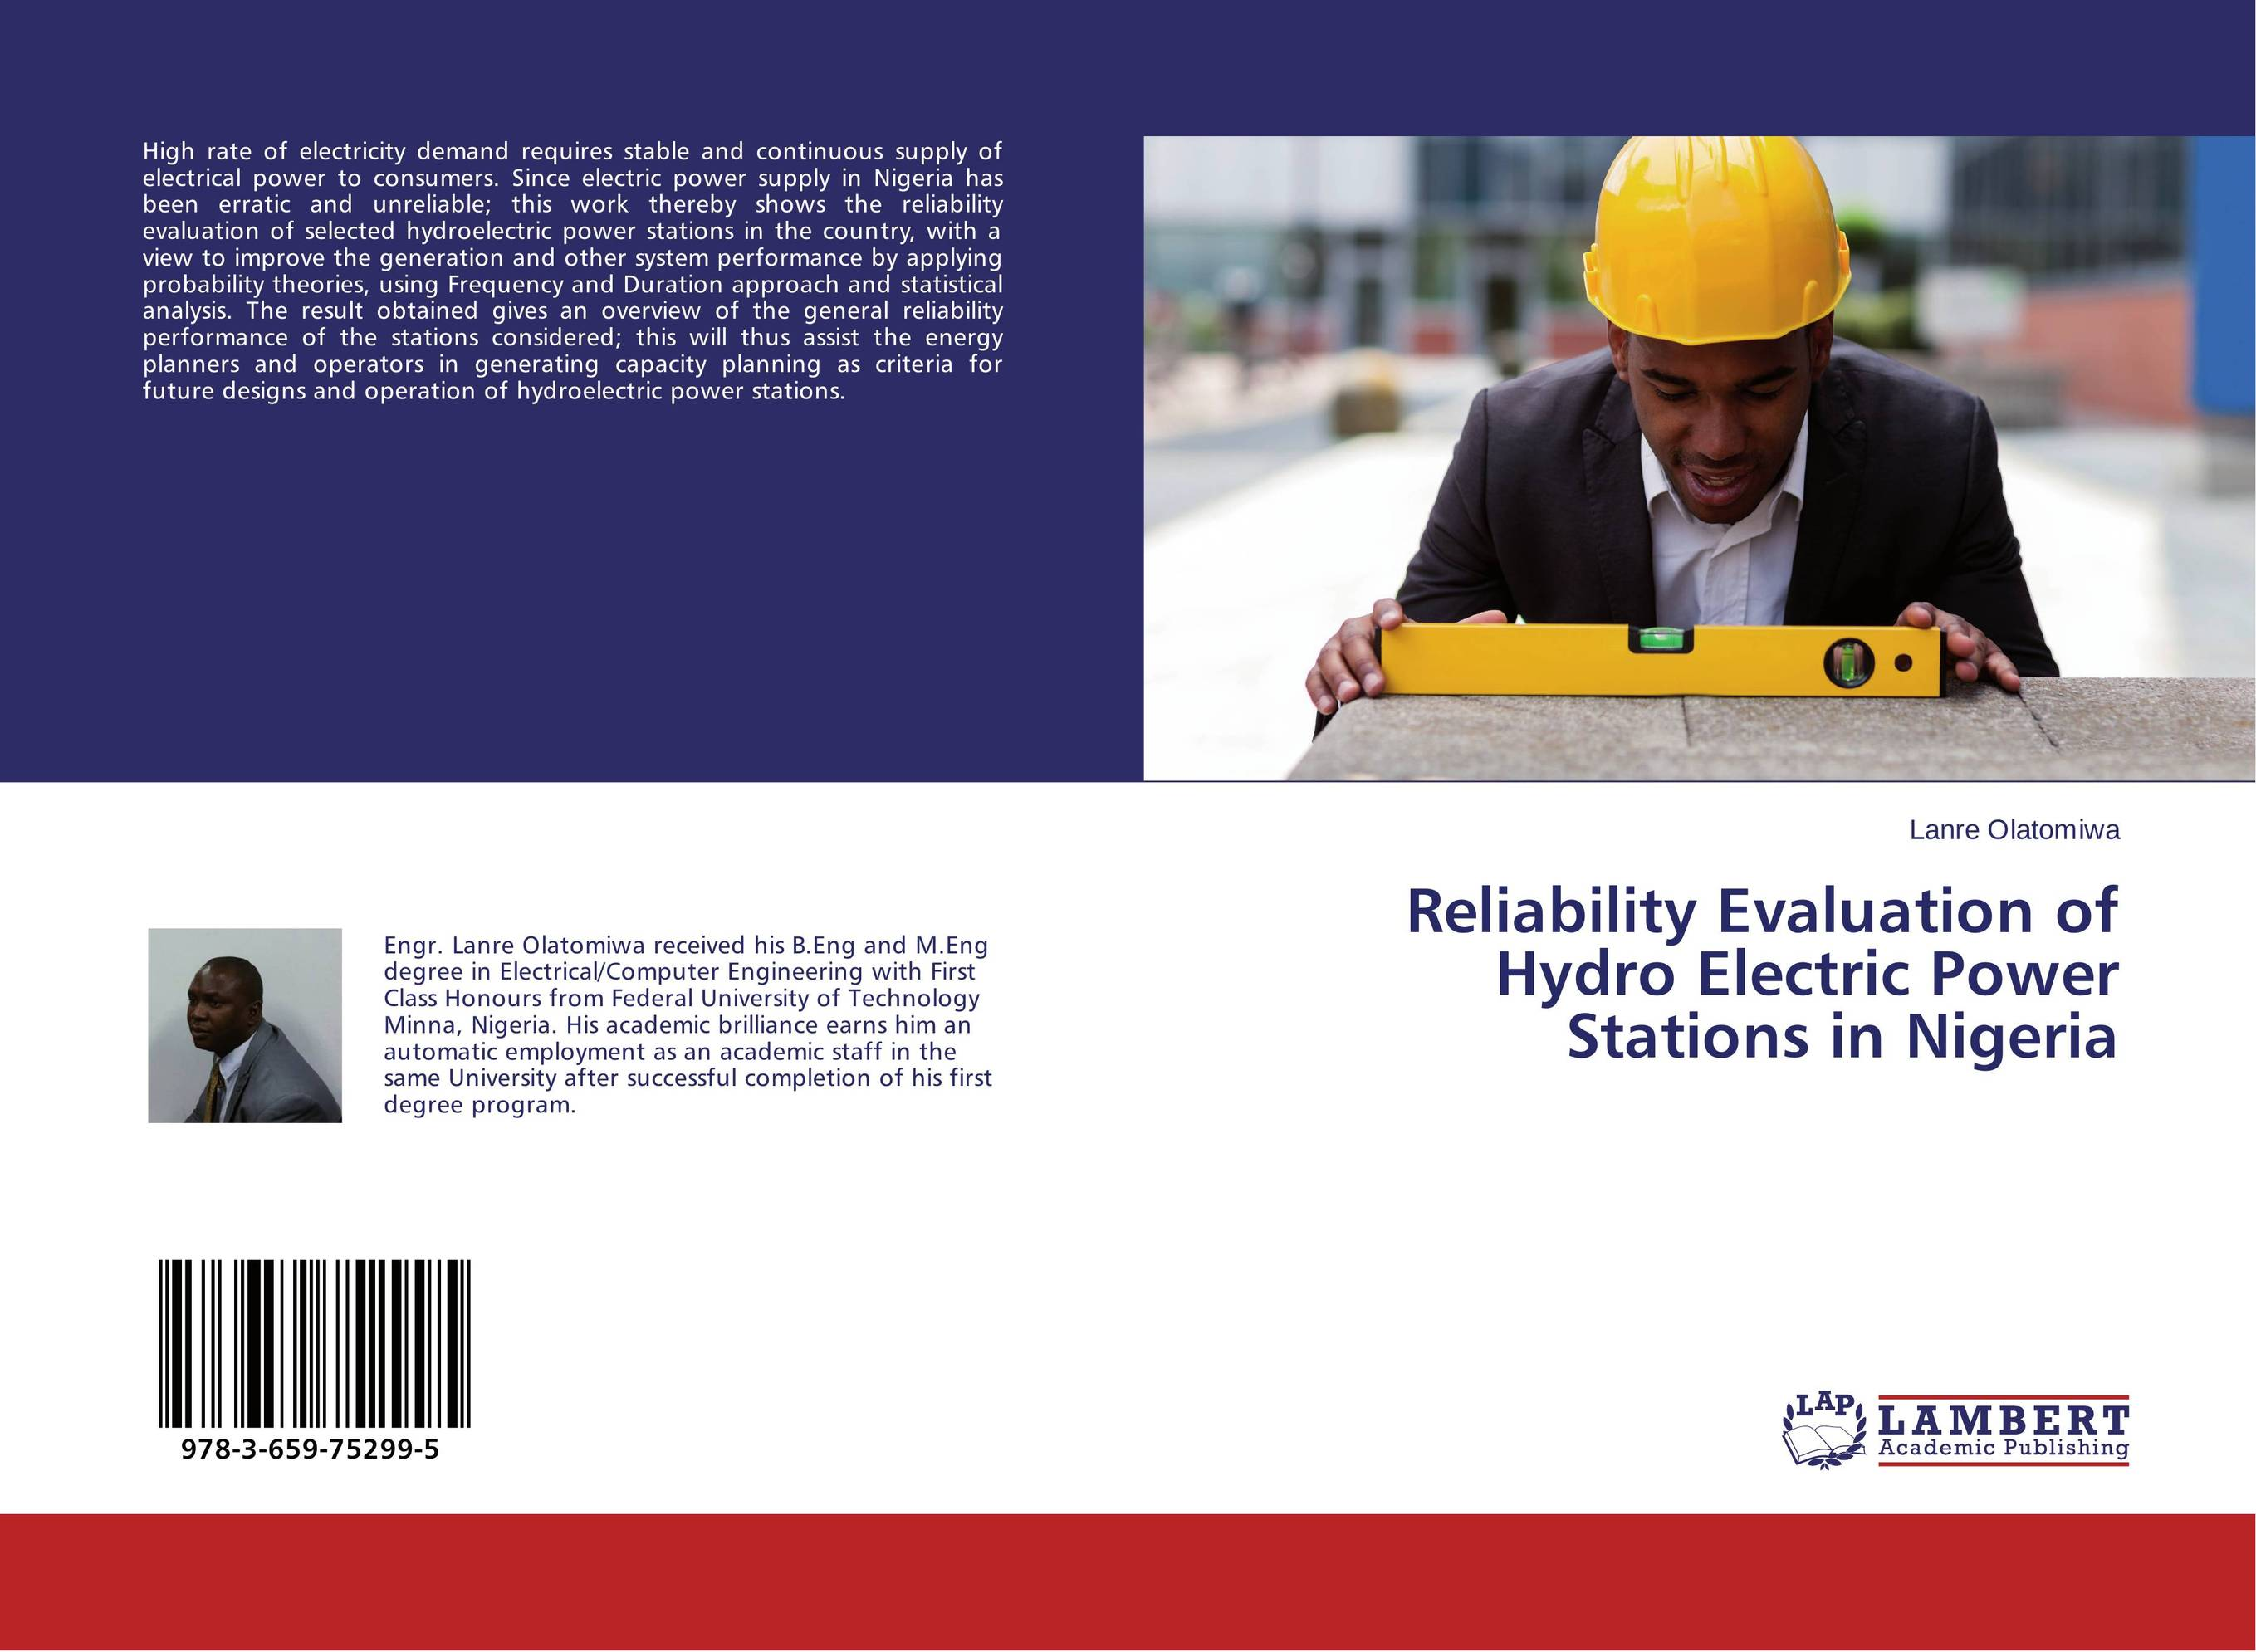 Reliability Evaluation of Hydro Electric Power Stations in Nigeria wind energy generation modeling for planning of electric power system